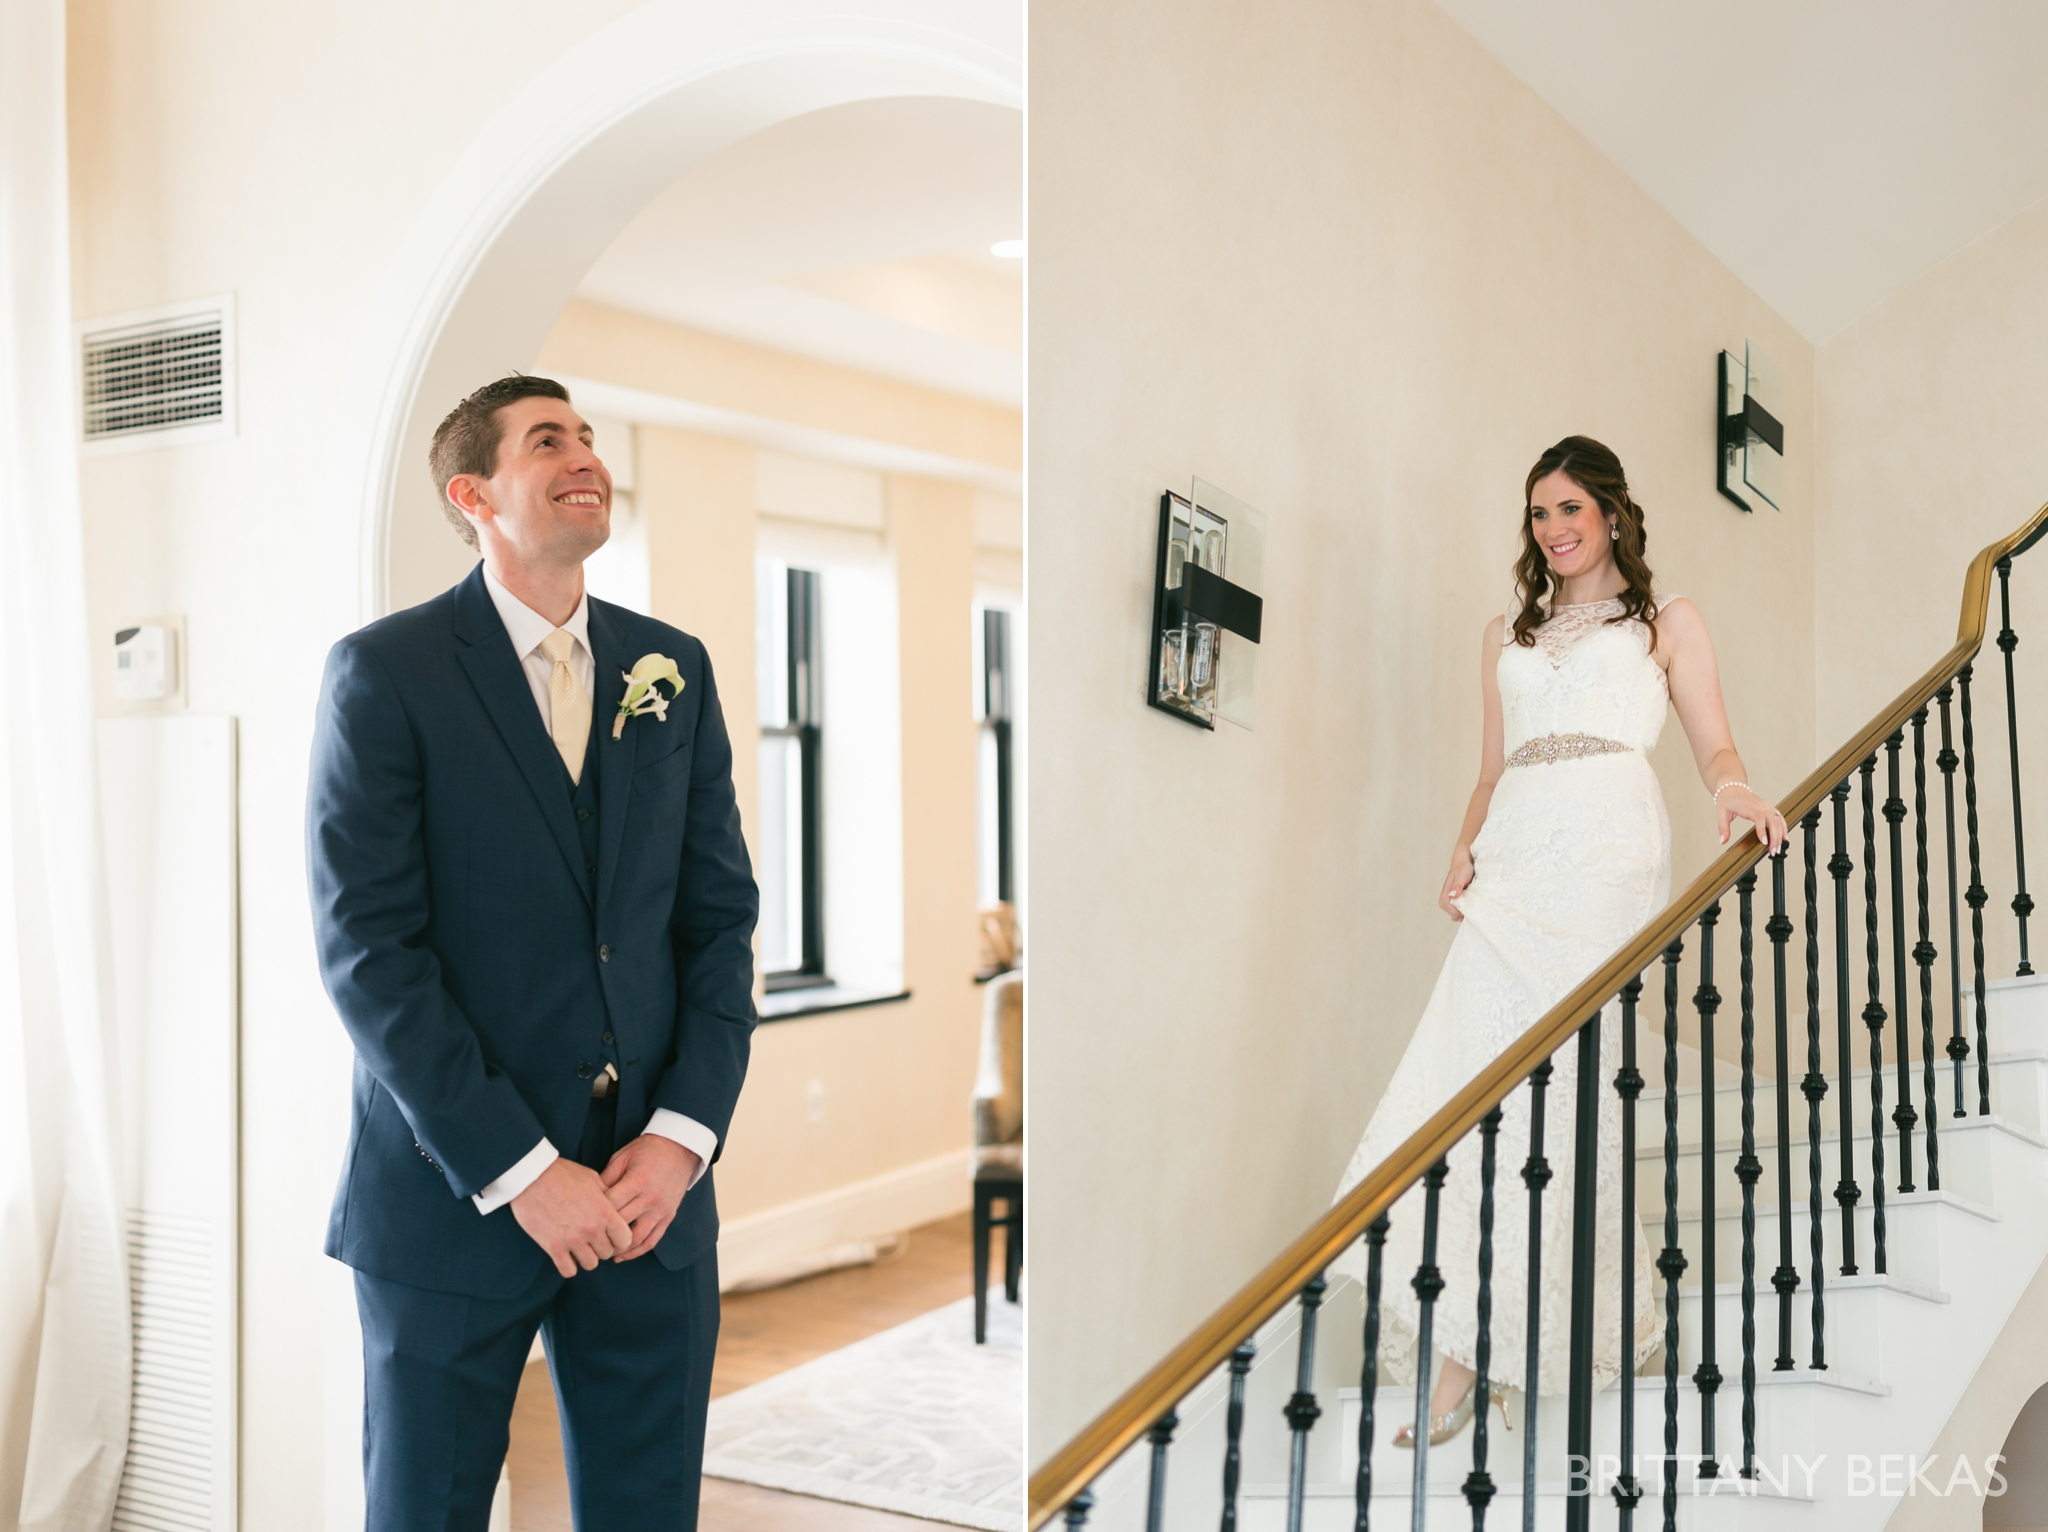 Chicago Wedding Photos Osteria Via Stato - Brittany Bekas Photography_0011